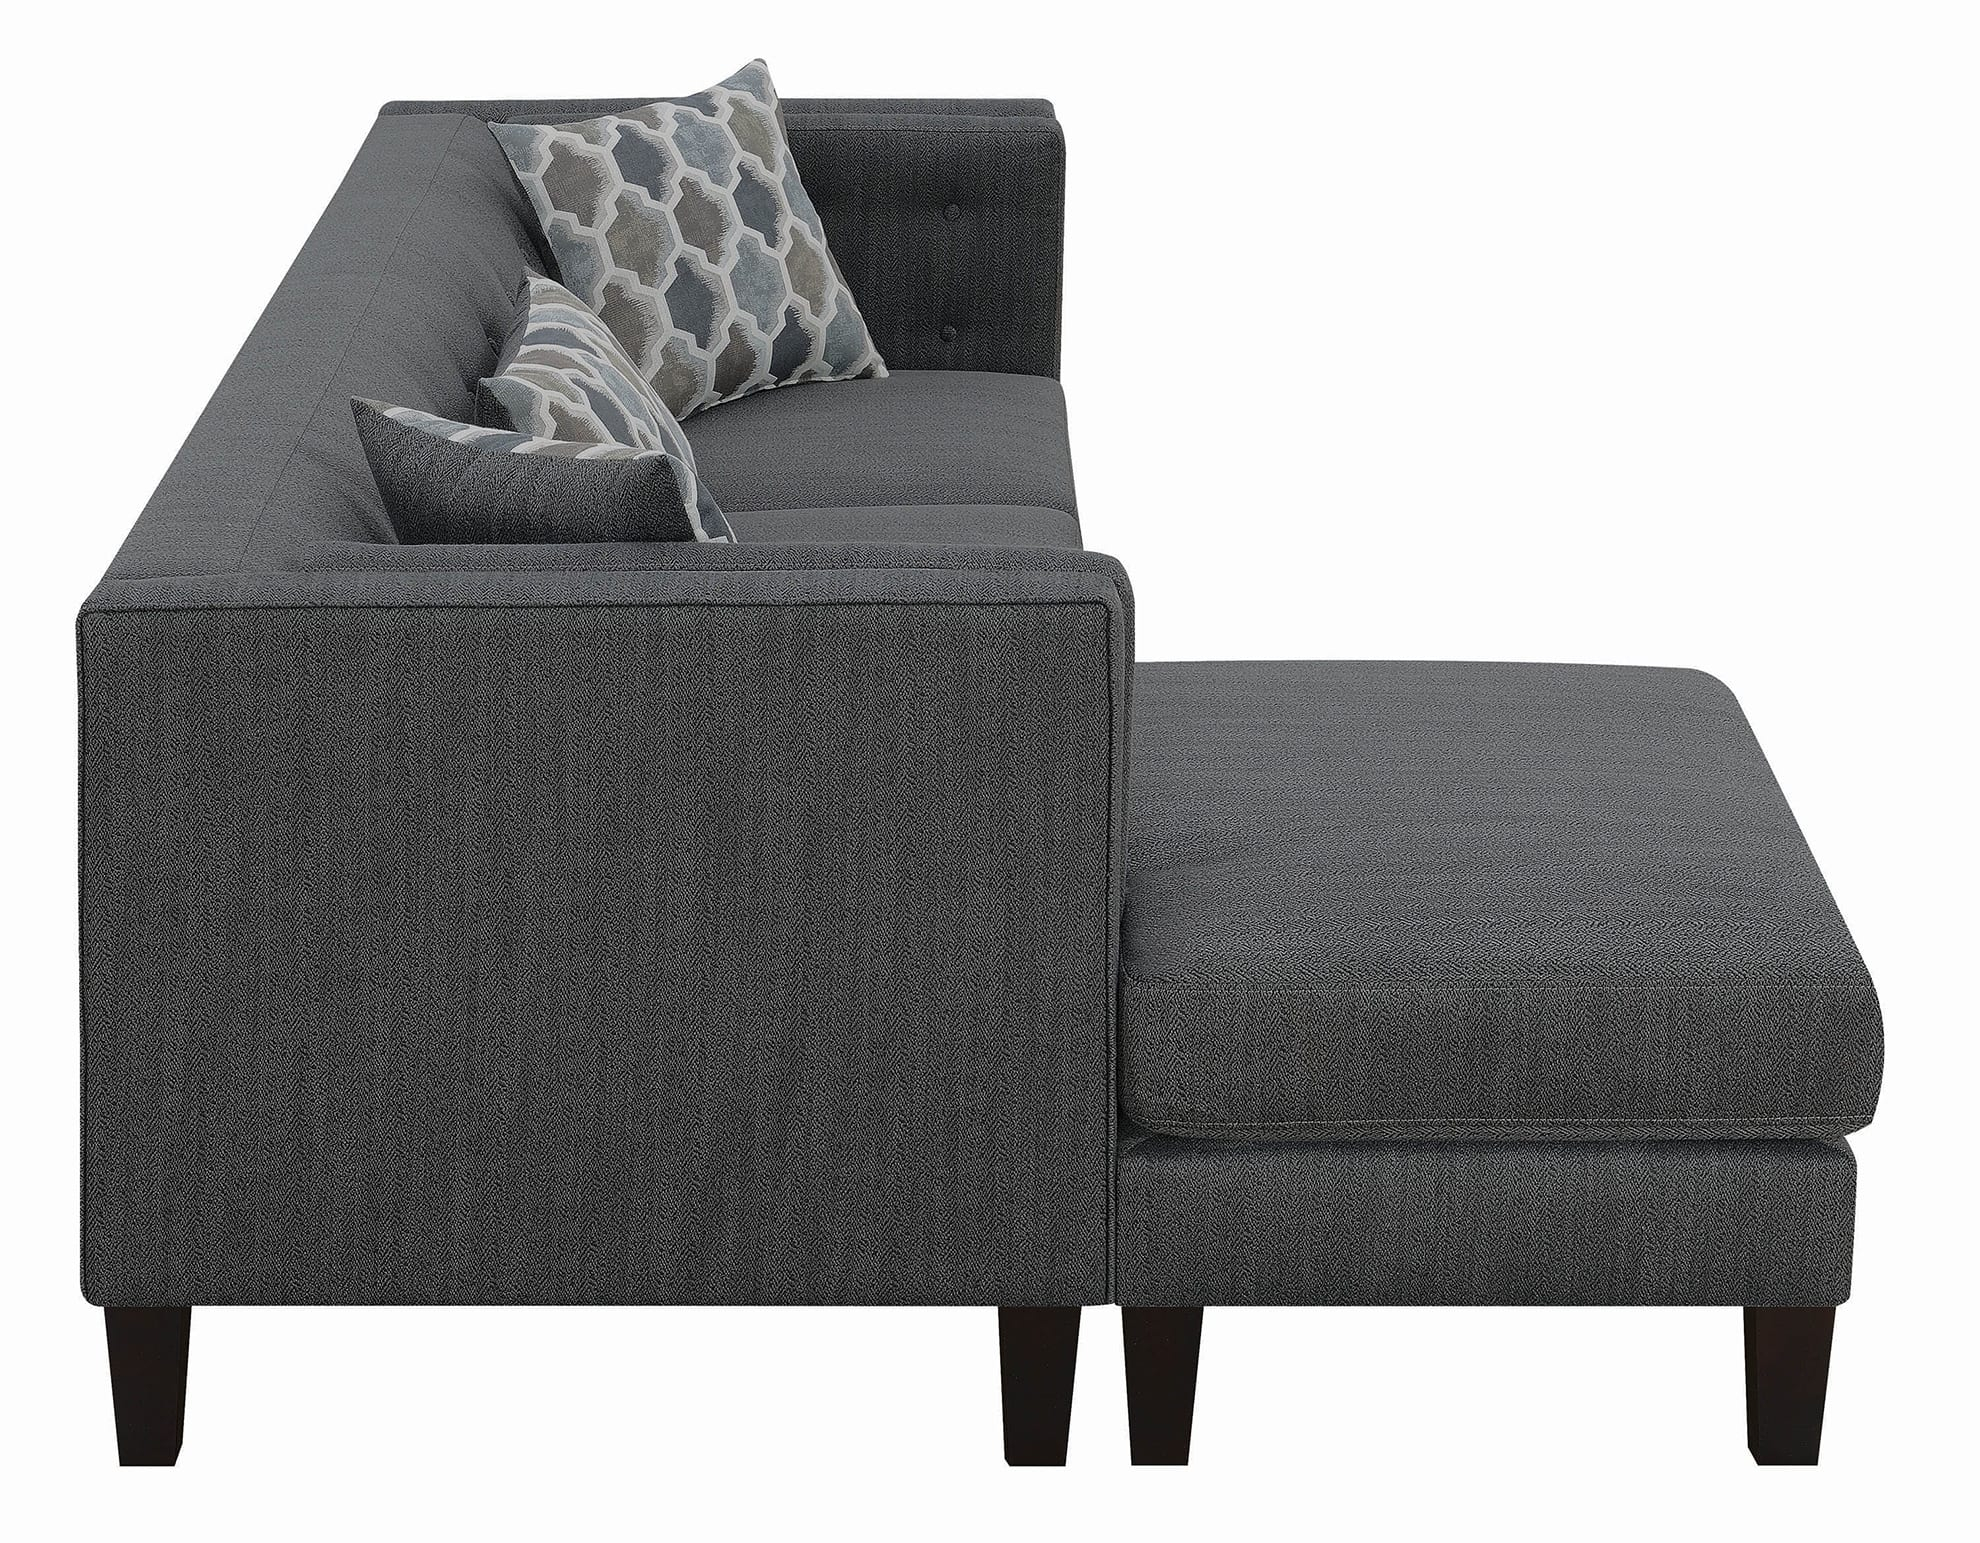 Sawyer Contemporary Dusty Blue Sectional | Quality With Brayson Chaise Sectional Sofas Dusty Blue (View 4 of 15)